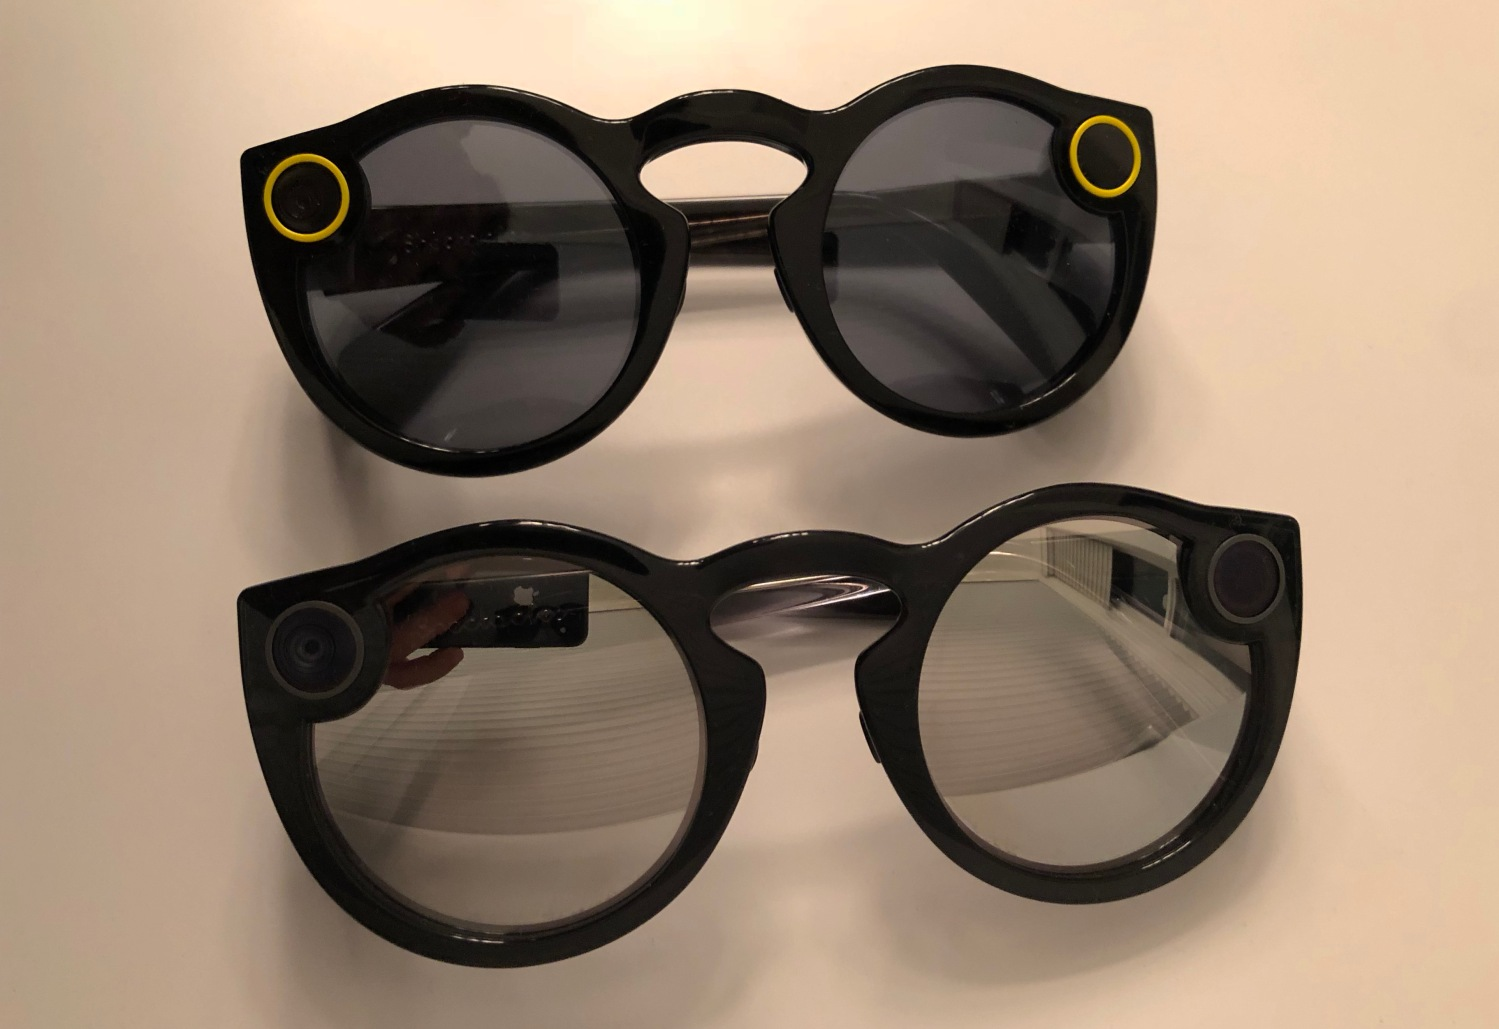 Snaapchat Spectacles Front View V1 vs V2